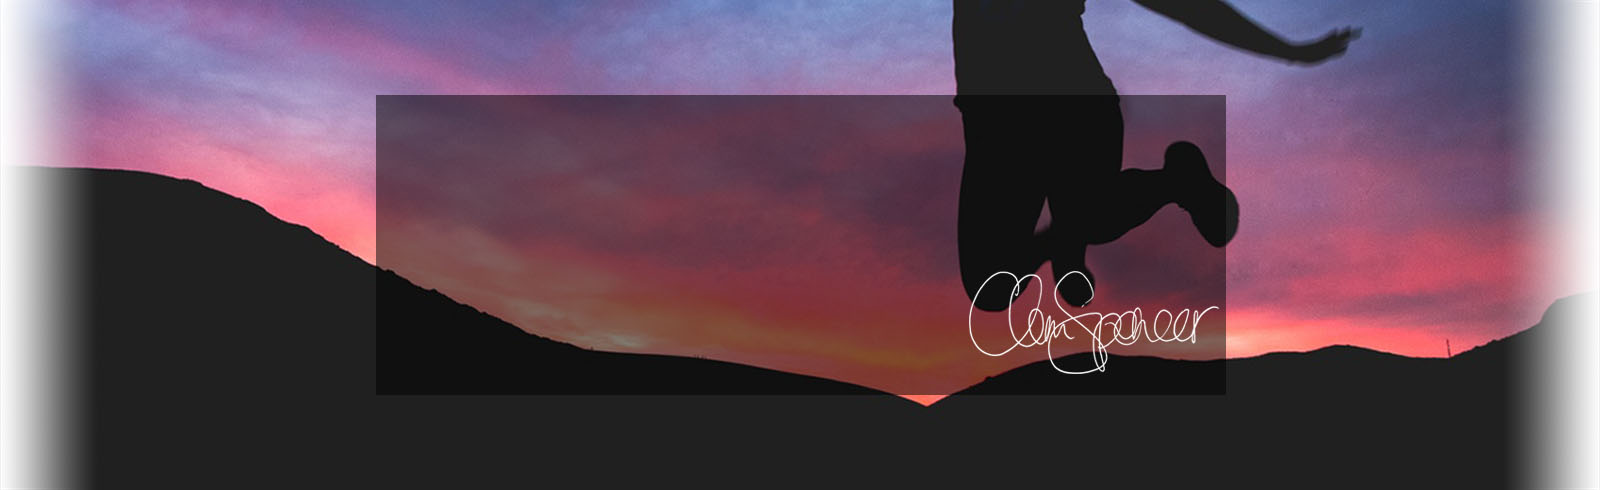 Sillouette of person jumping in foreground with pink sunset behind cornish sanddunes with signature of Clem Spencer, client of Hodgsons Chartered Accountants in Cornwall